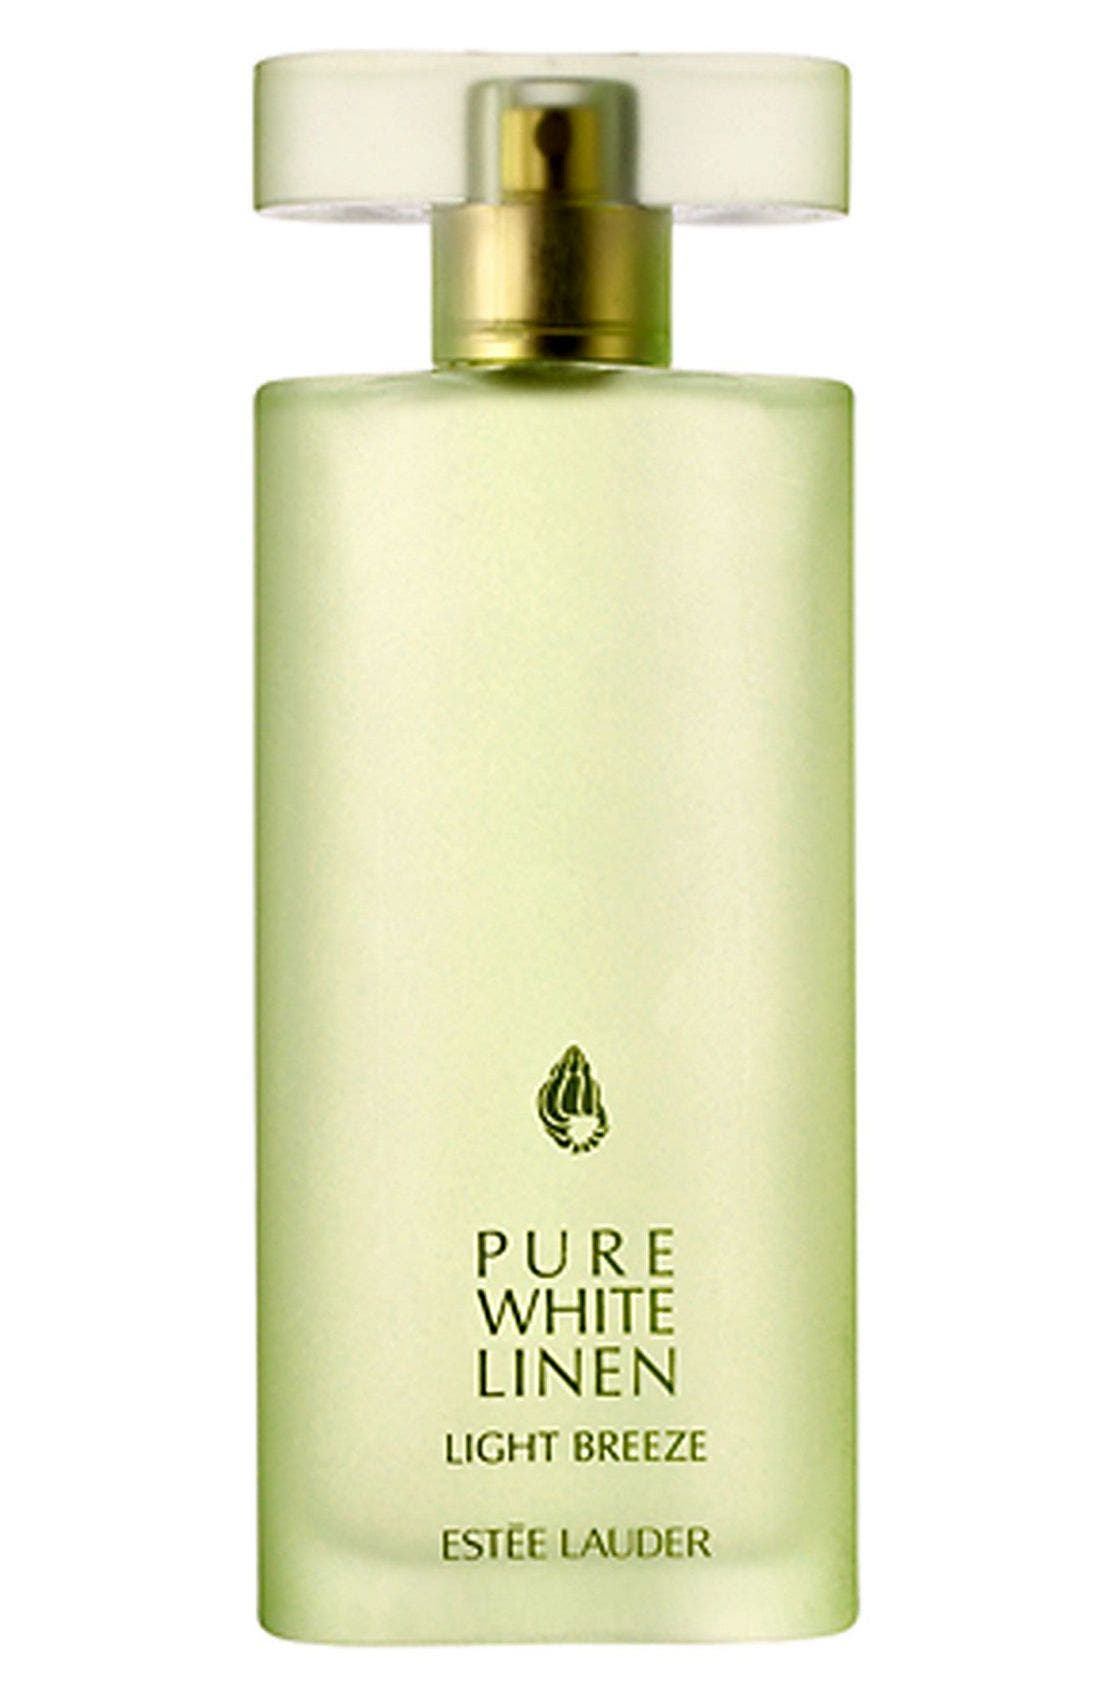 Pure White Linen - Light Breeze Eau de Parfum Spray,                             Main thumbnail 1, color,                             NO COLOR